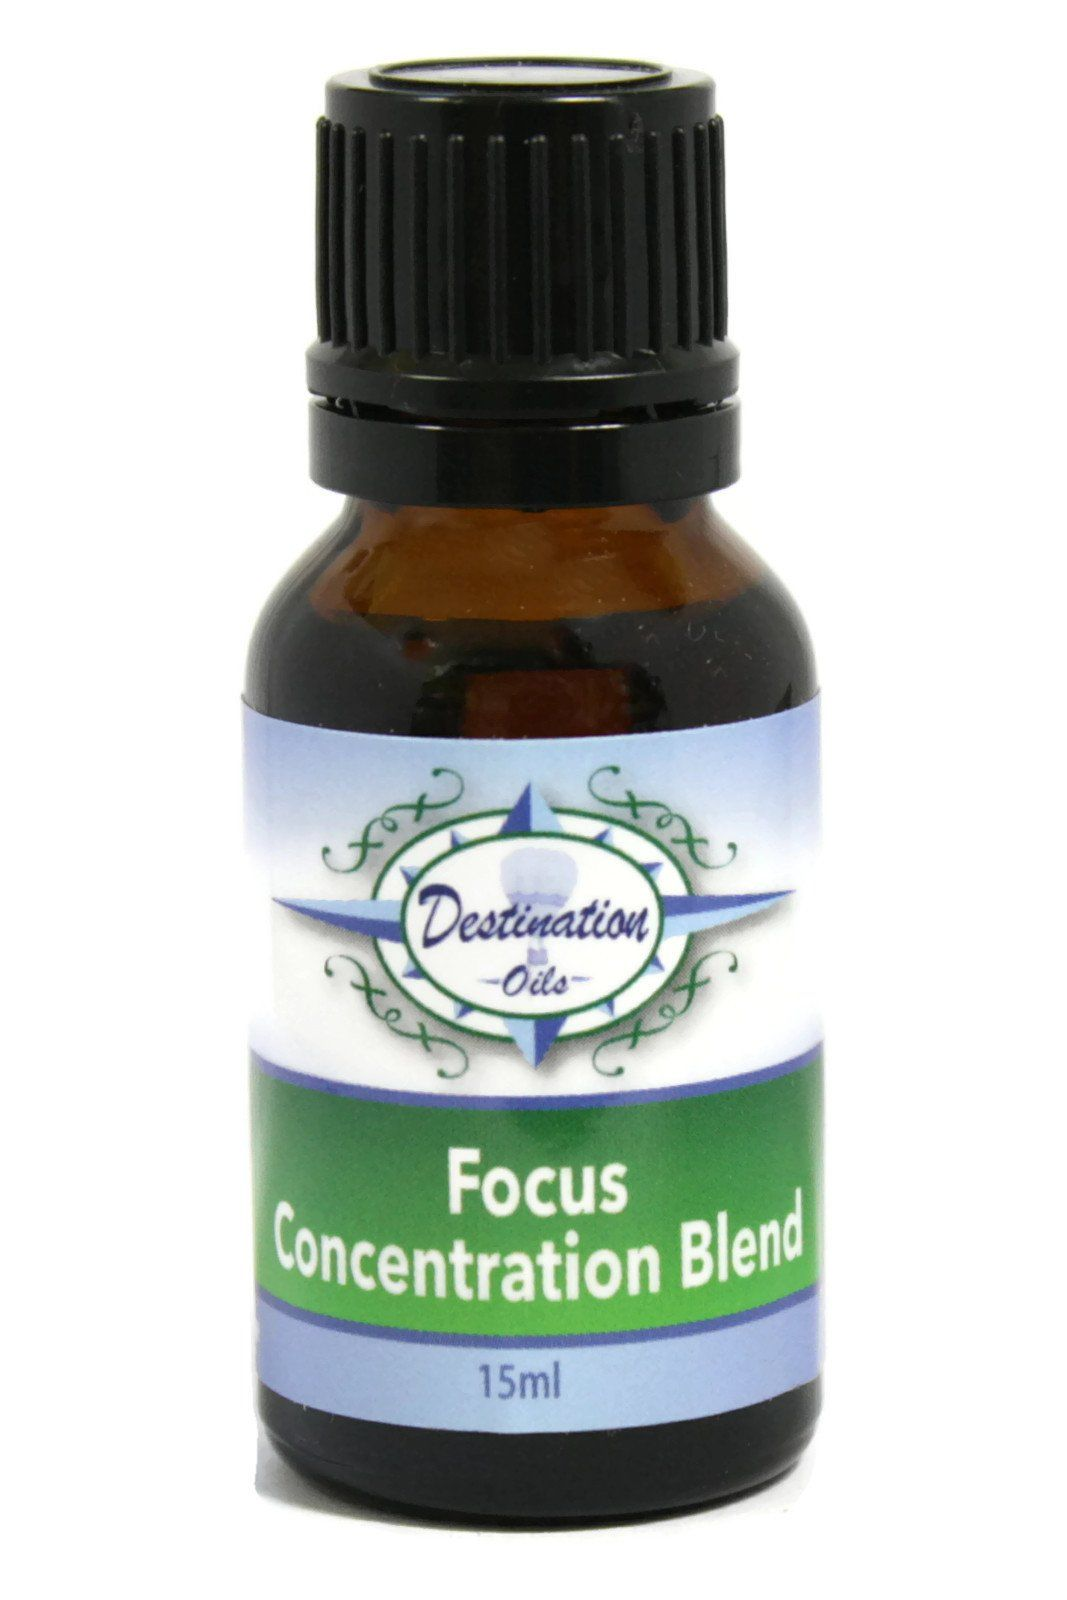 Focus - Concentration Essential Oil Blend - 15ml-Essential Oil Blend-Destination Oils